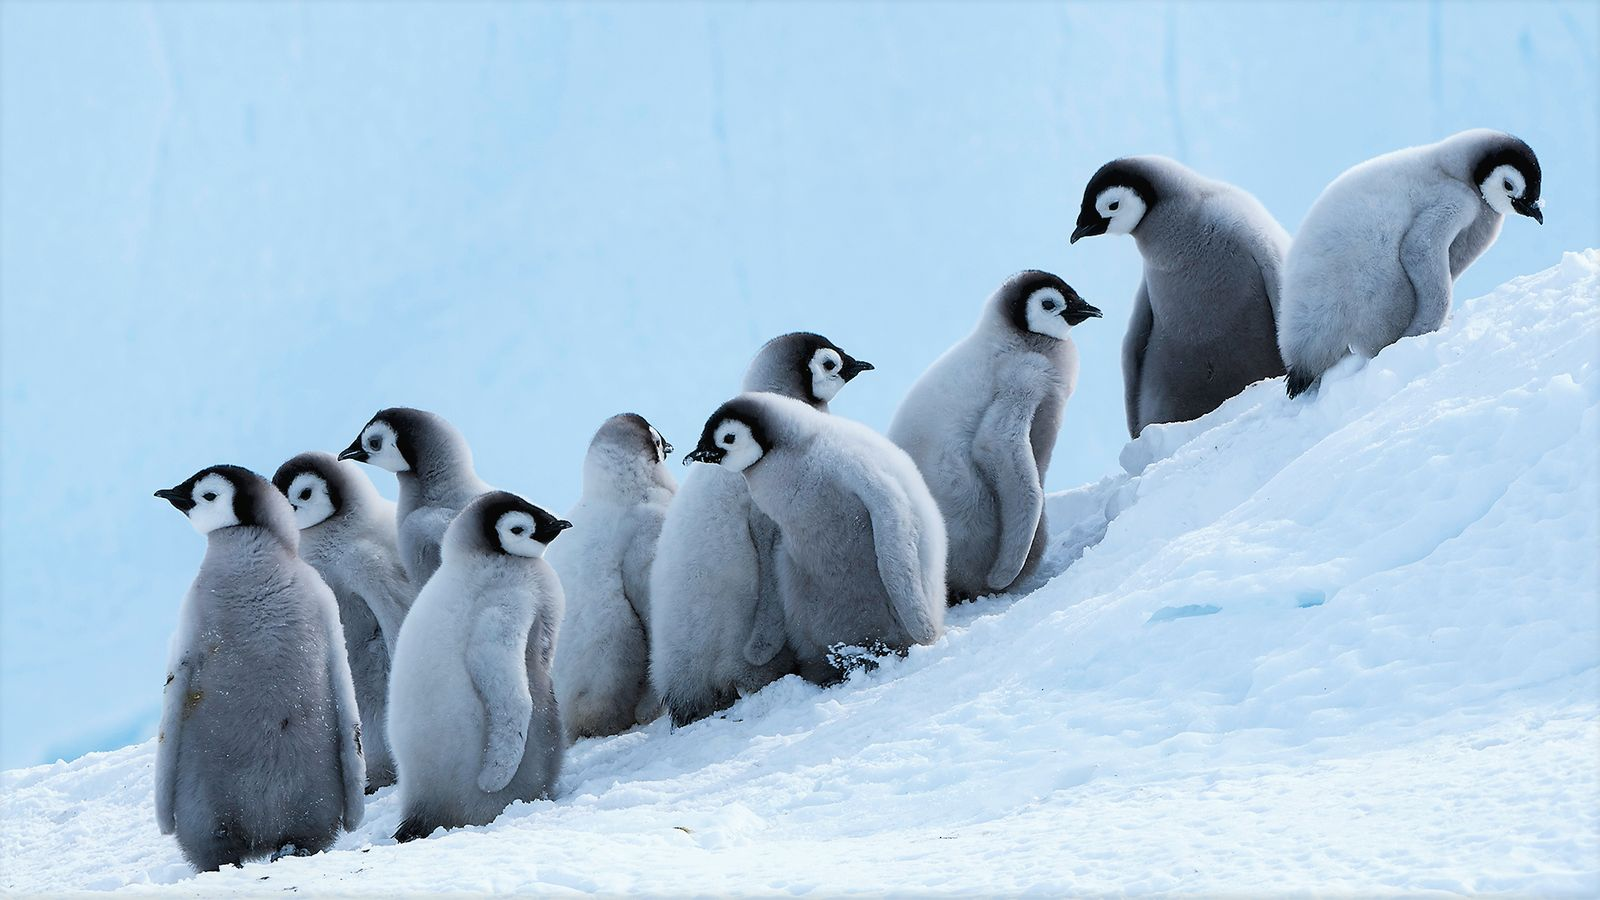 Penguin HD Wallpapers 37 images   Wallpaper Stream 1600x900